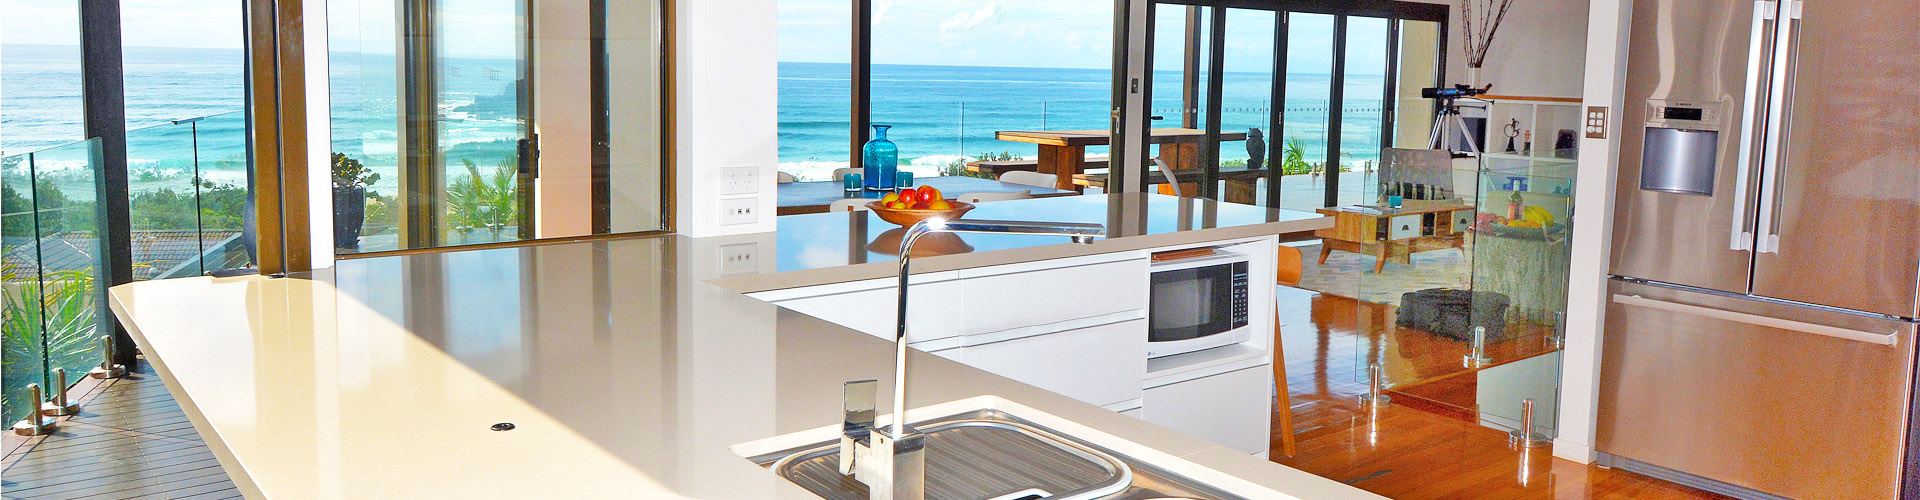 Mid Coast Kitchens Port Macquarie